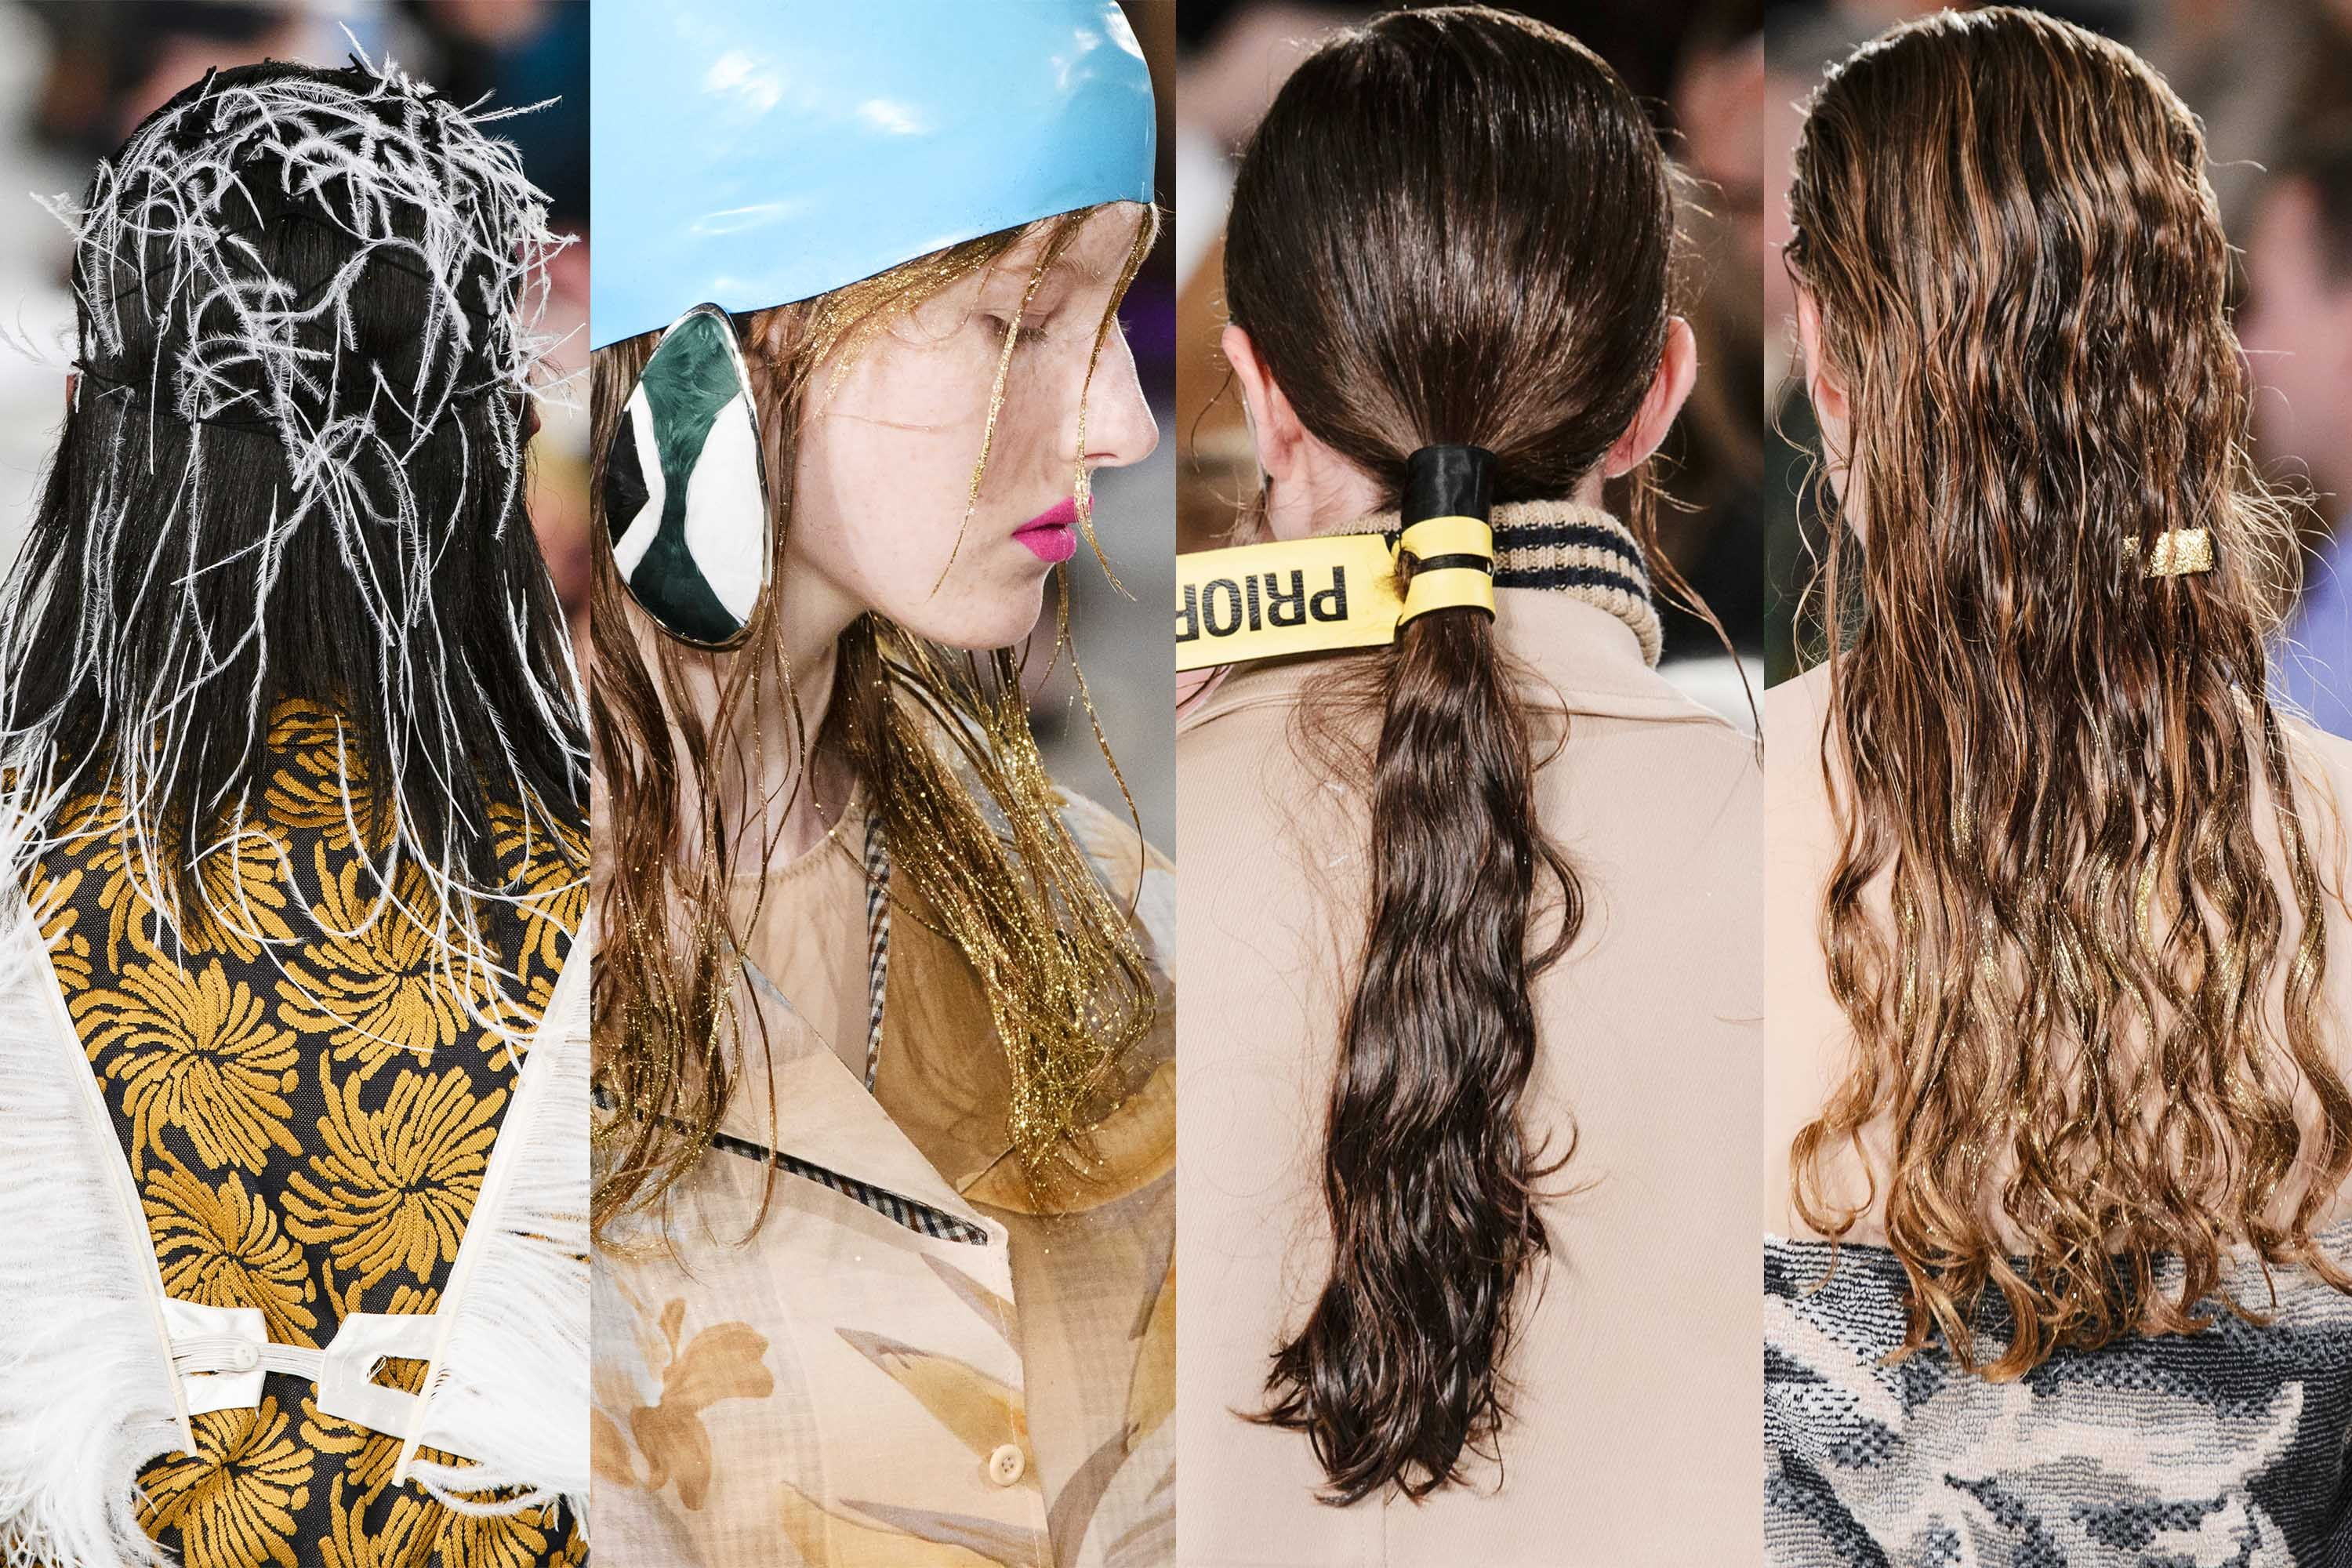 d0507e6ca78 Spring Hair Trends 2018 - Spring and Summer Hairstyles From NYFW Runway